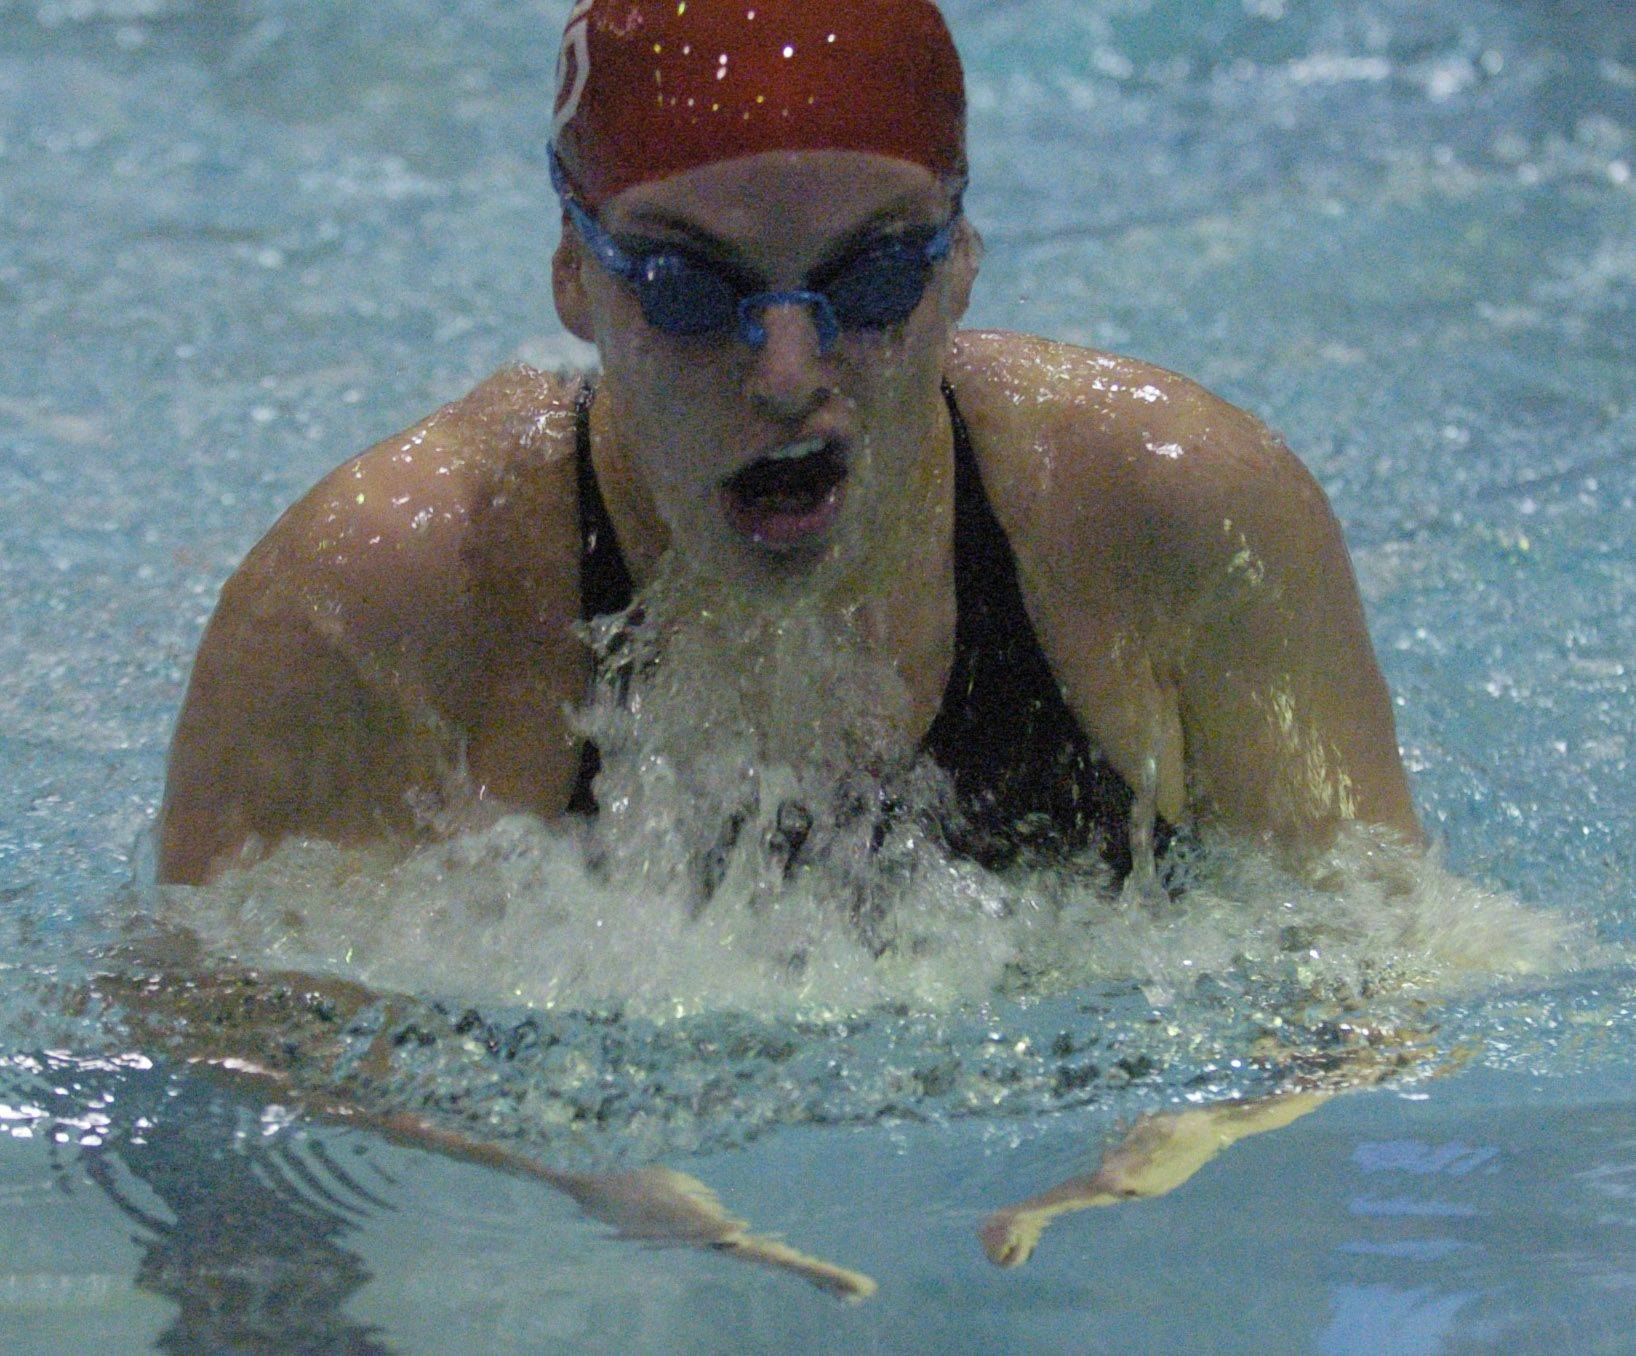 Colleen Champa of Dundee Crown swims the 100-yard breast stroke during Friday's girls state swimming prelims at Evanston High School.